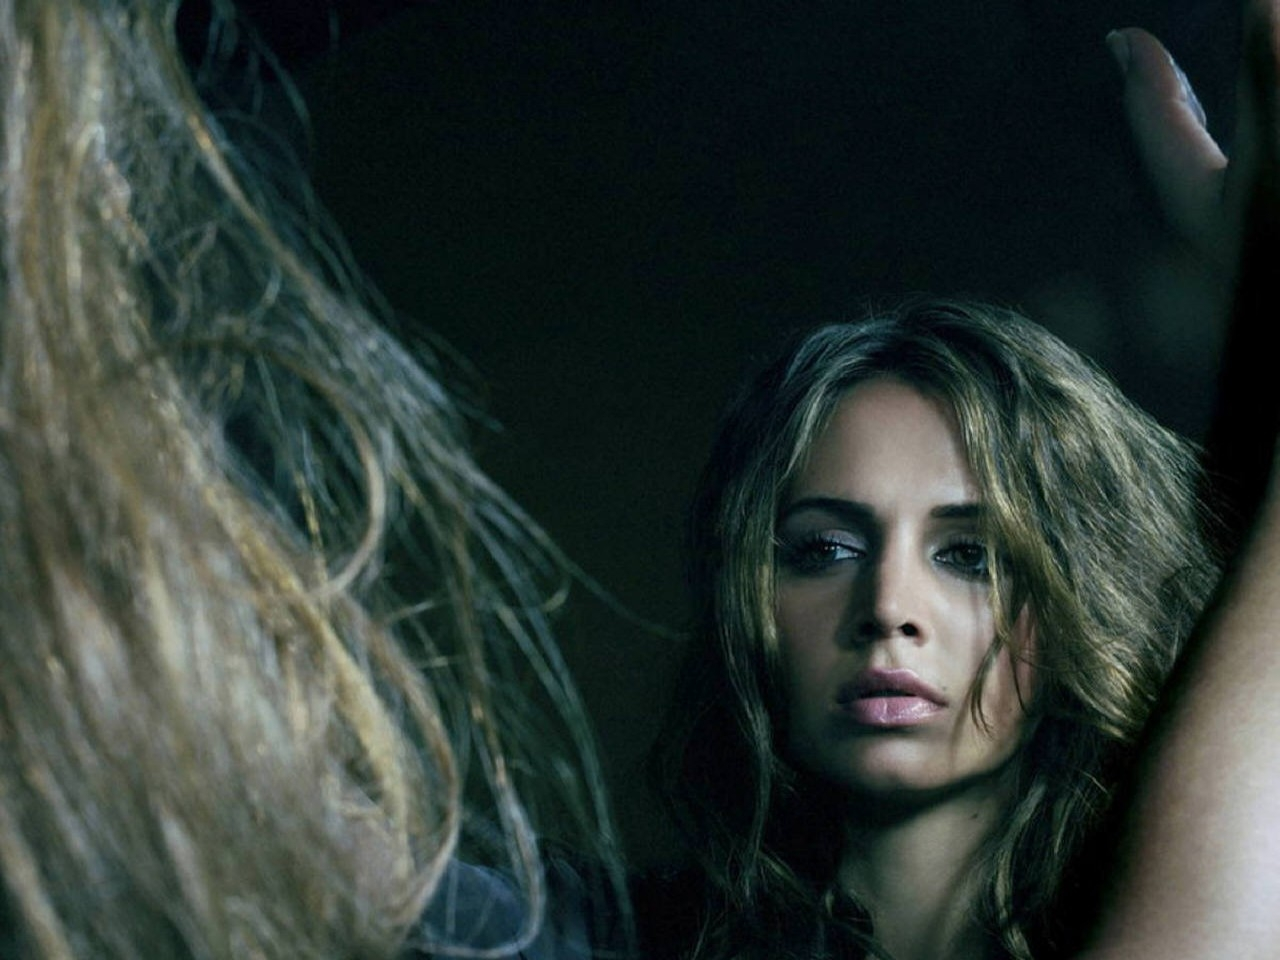 Wallpaper di Eliza Dushku in versione misteriosa e dark